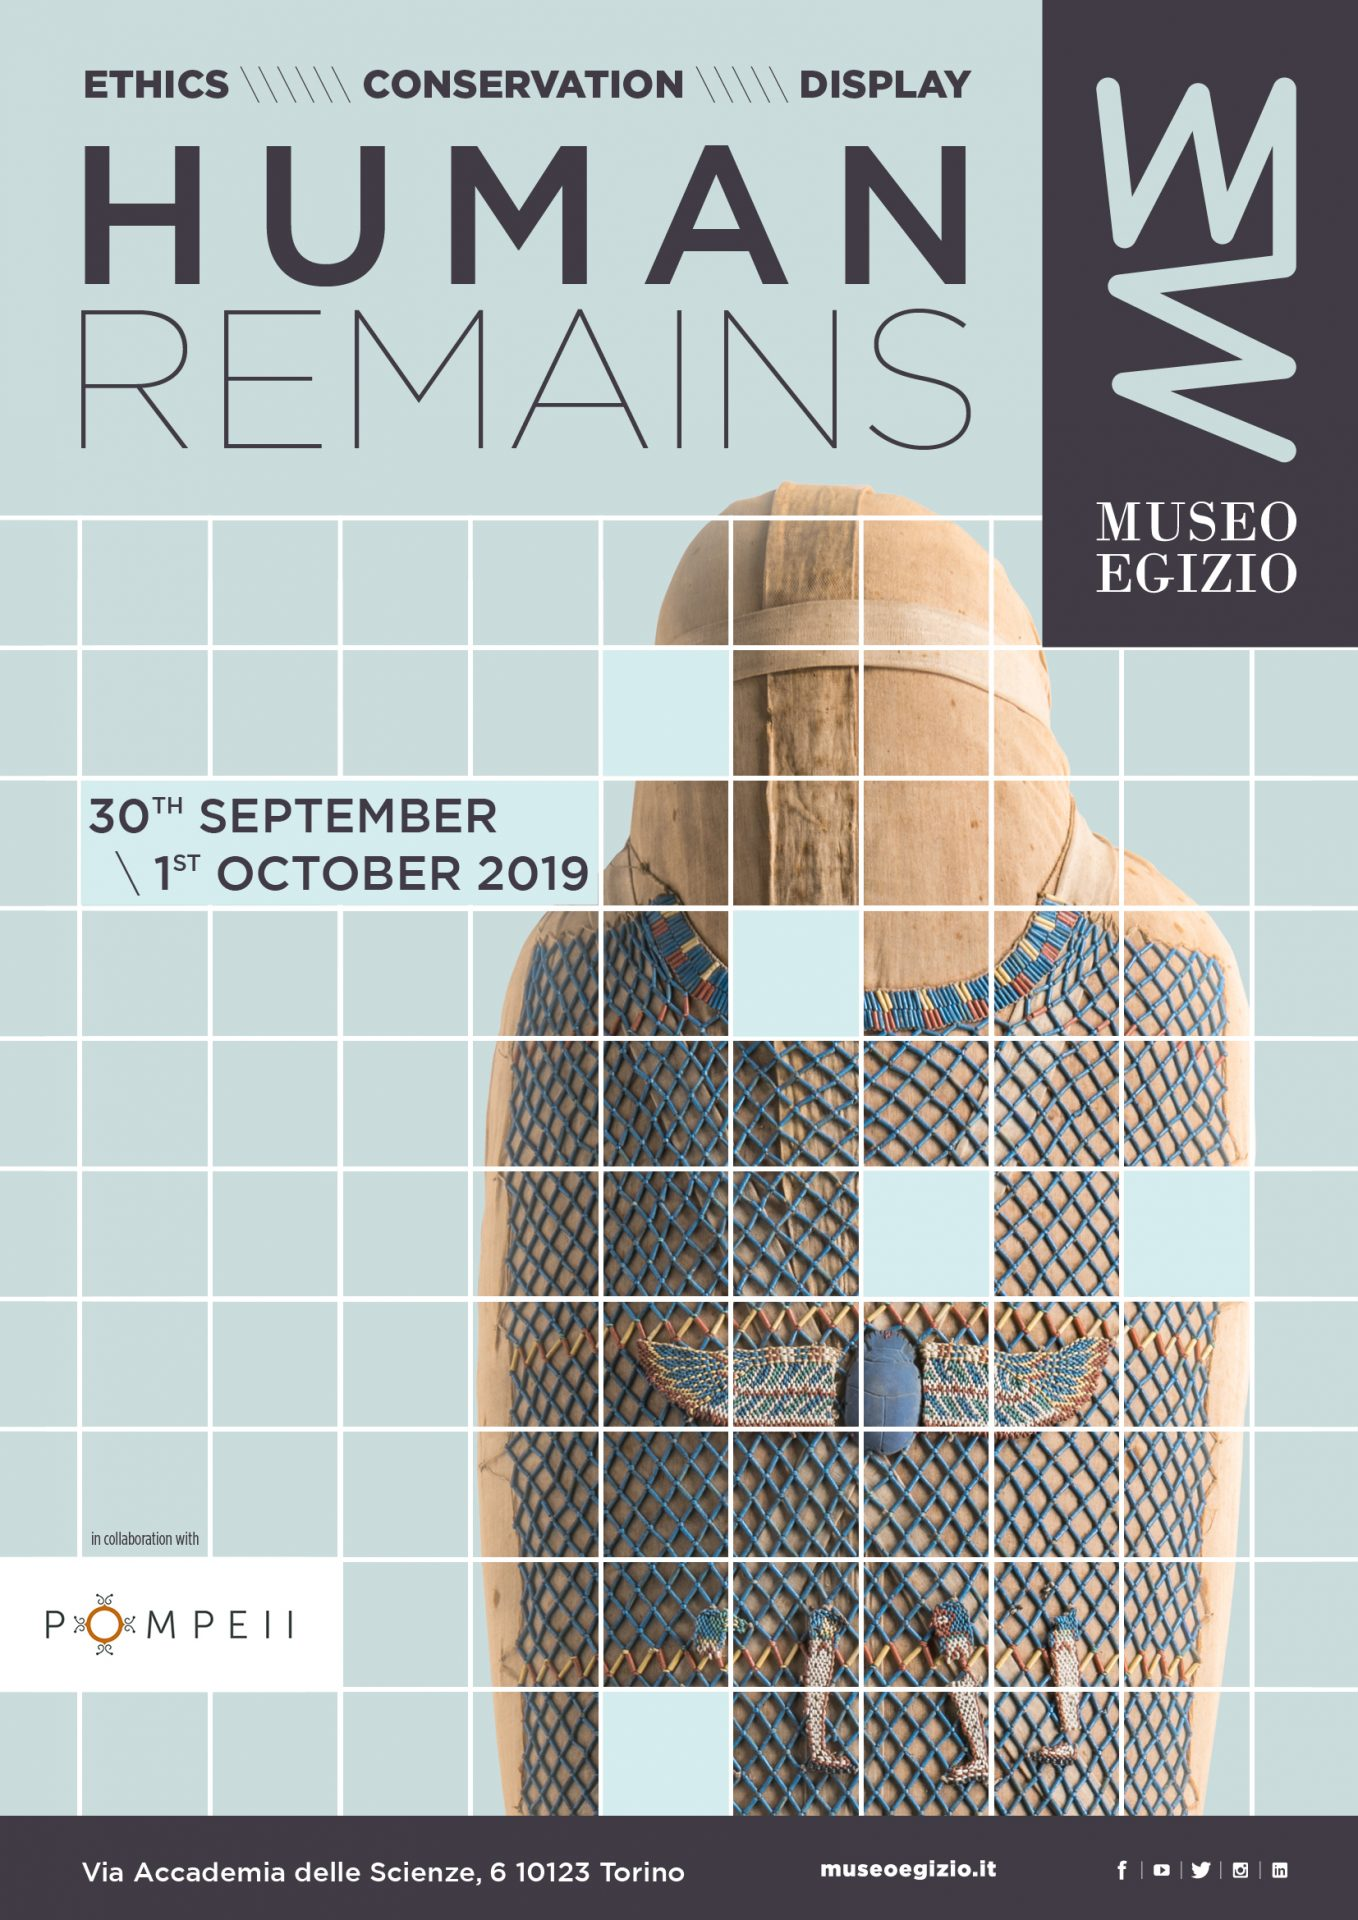 Conference: Human Remains. Ethics, Conservation, Display